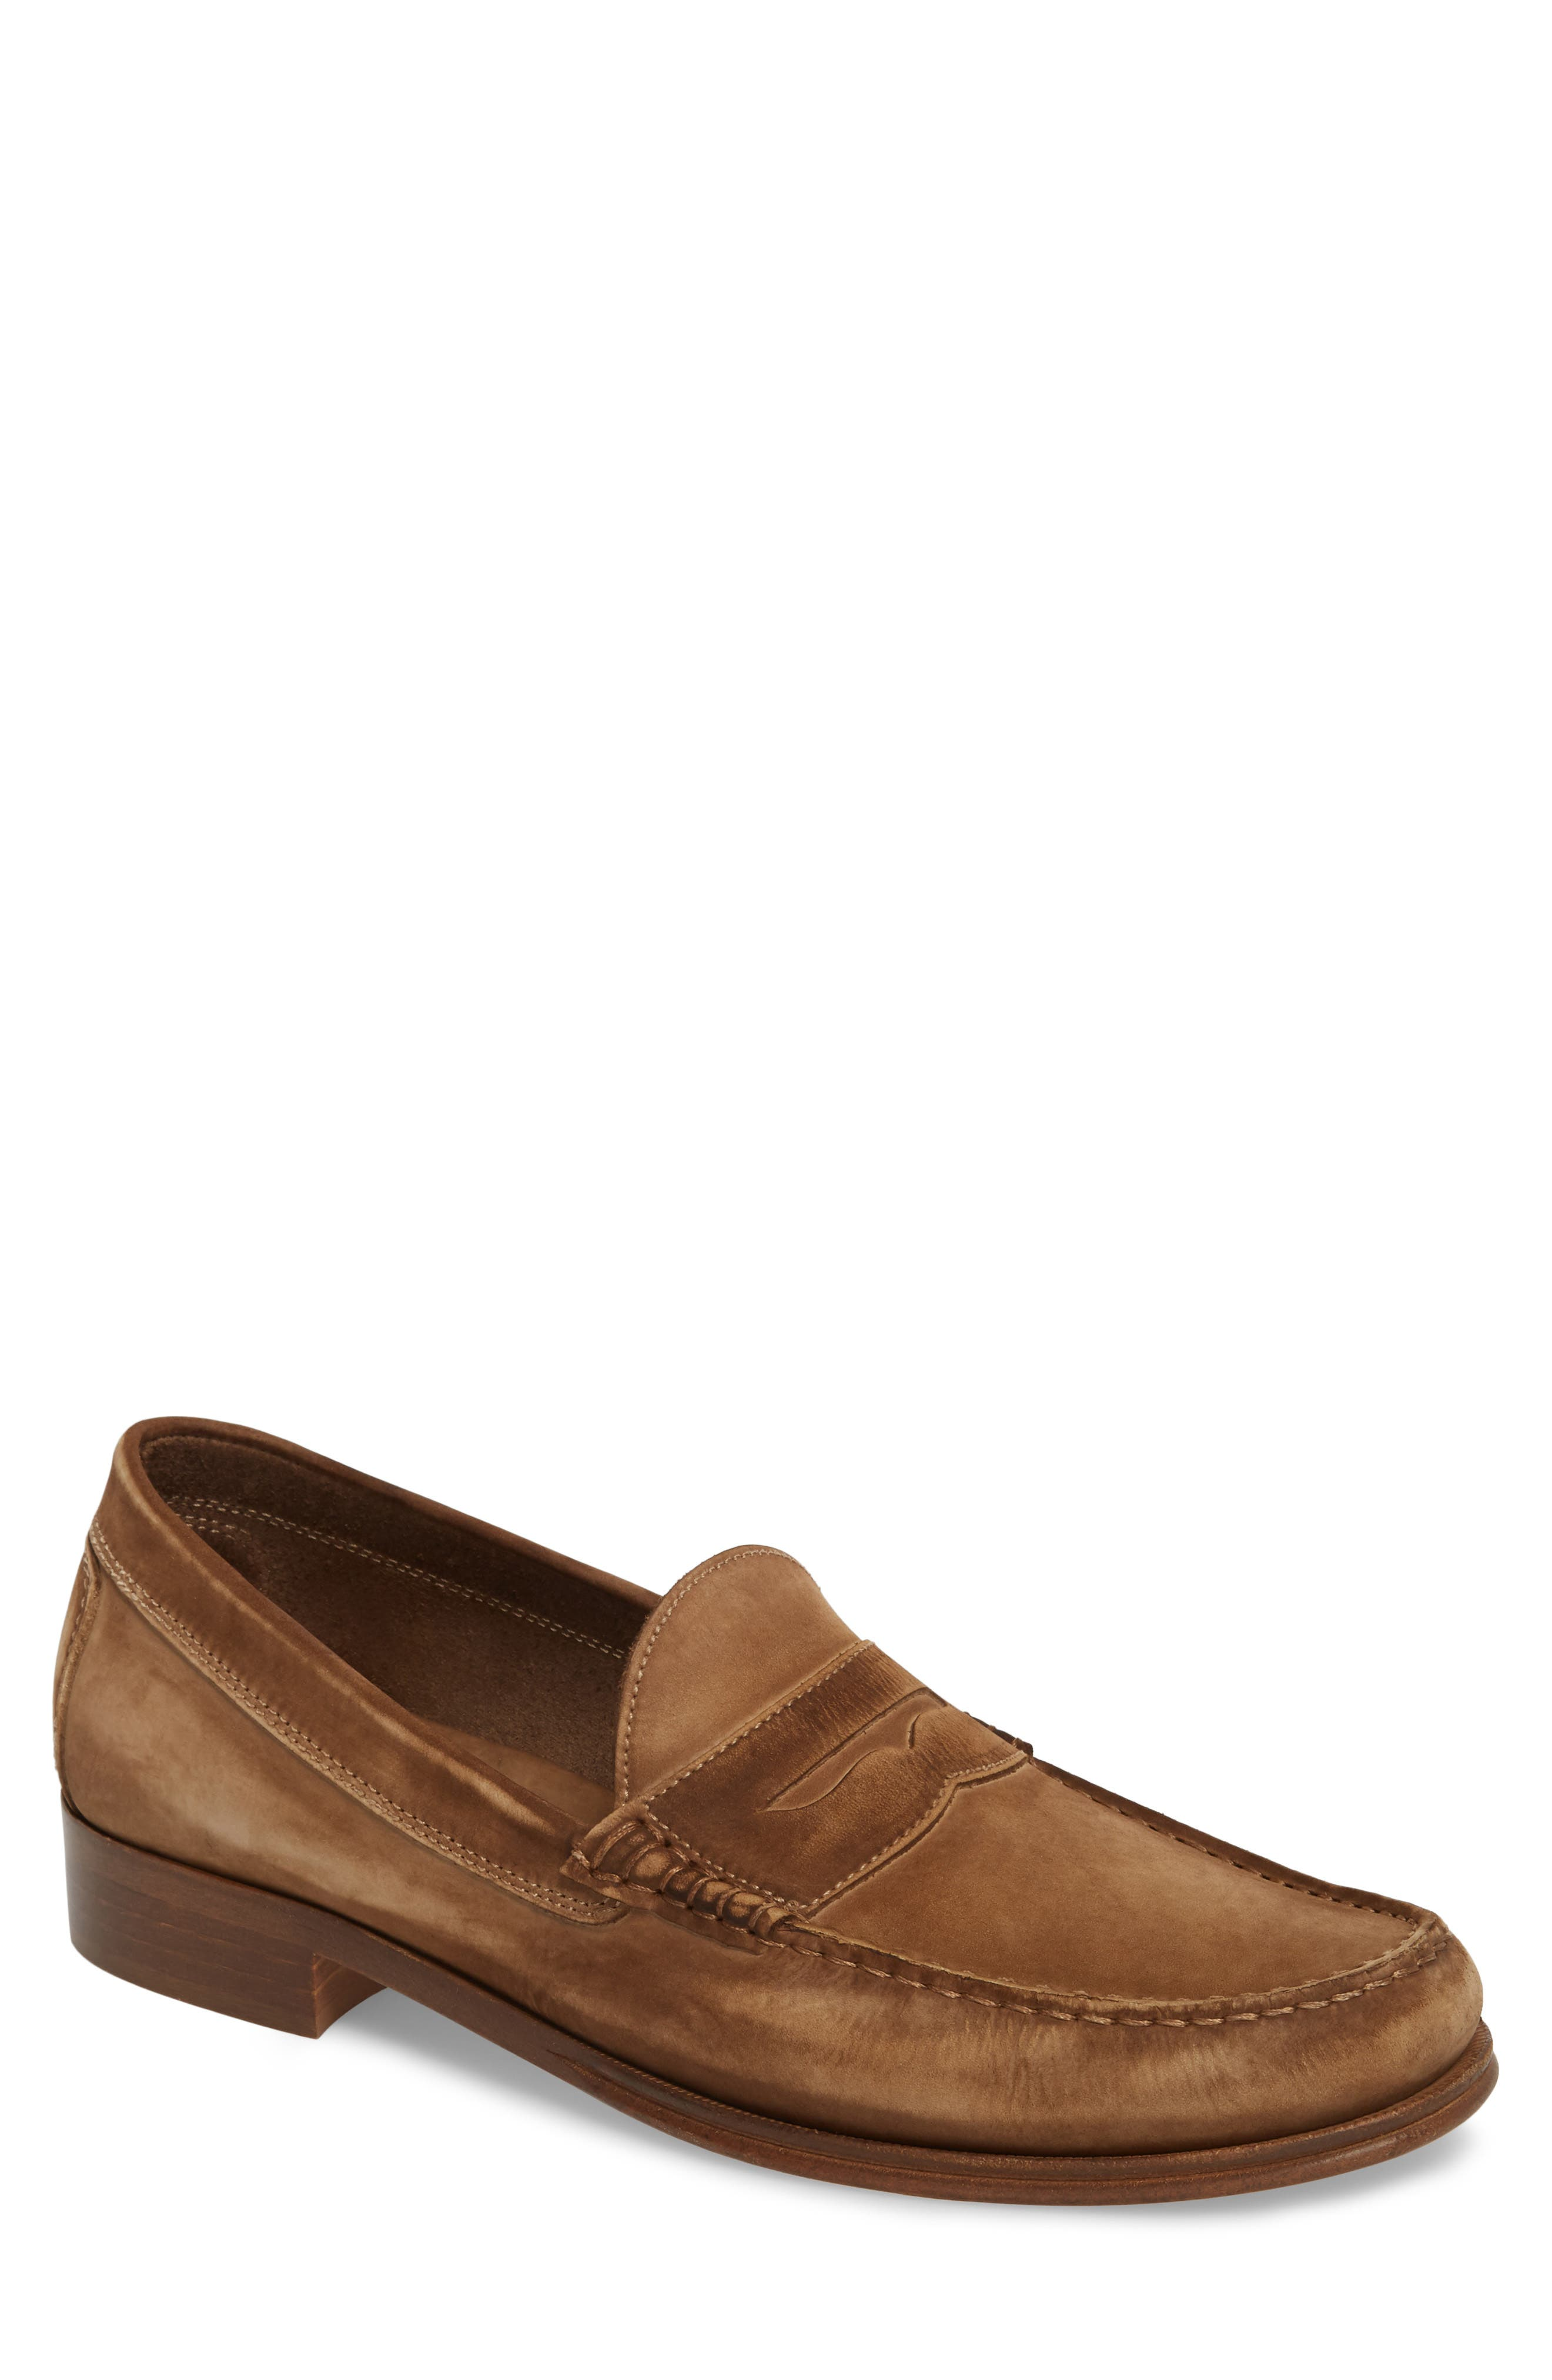 Nicola Penny Loafer,                             Main thumbnail 1, color,                             205